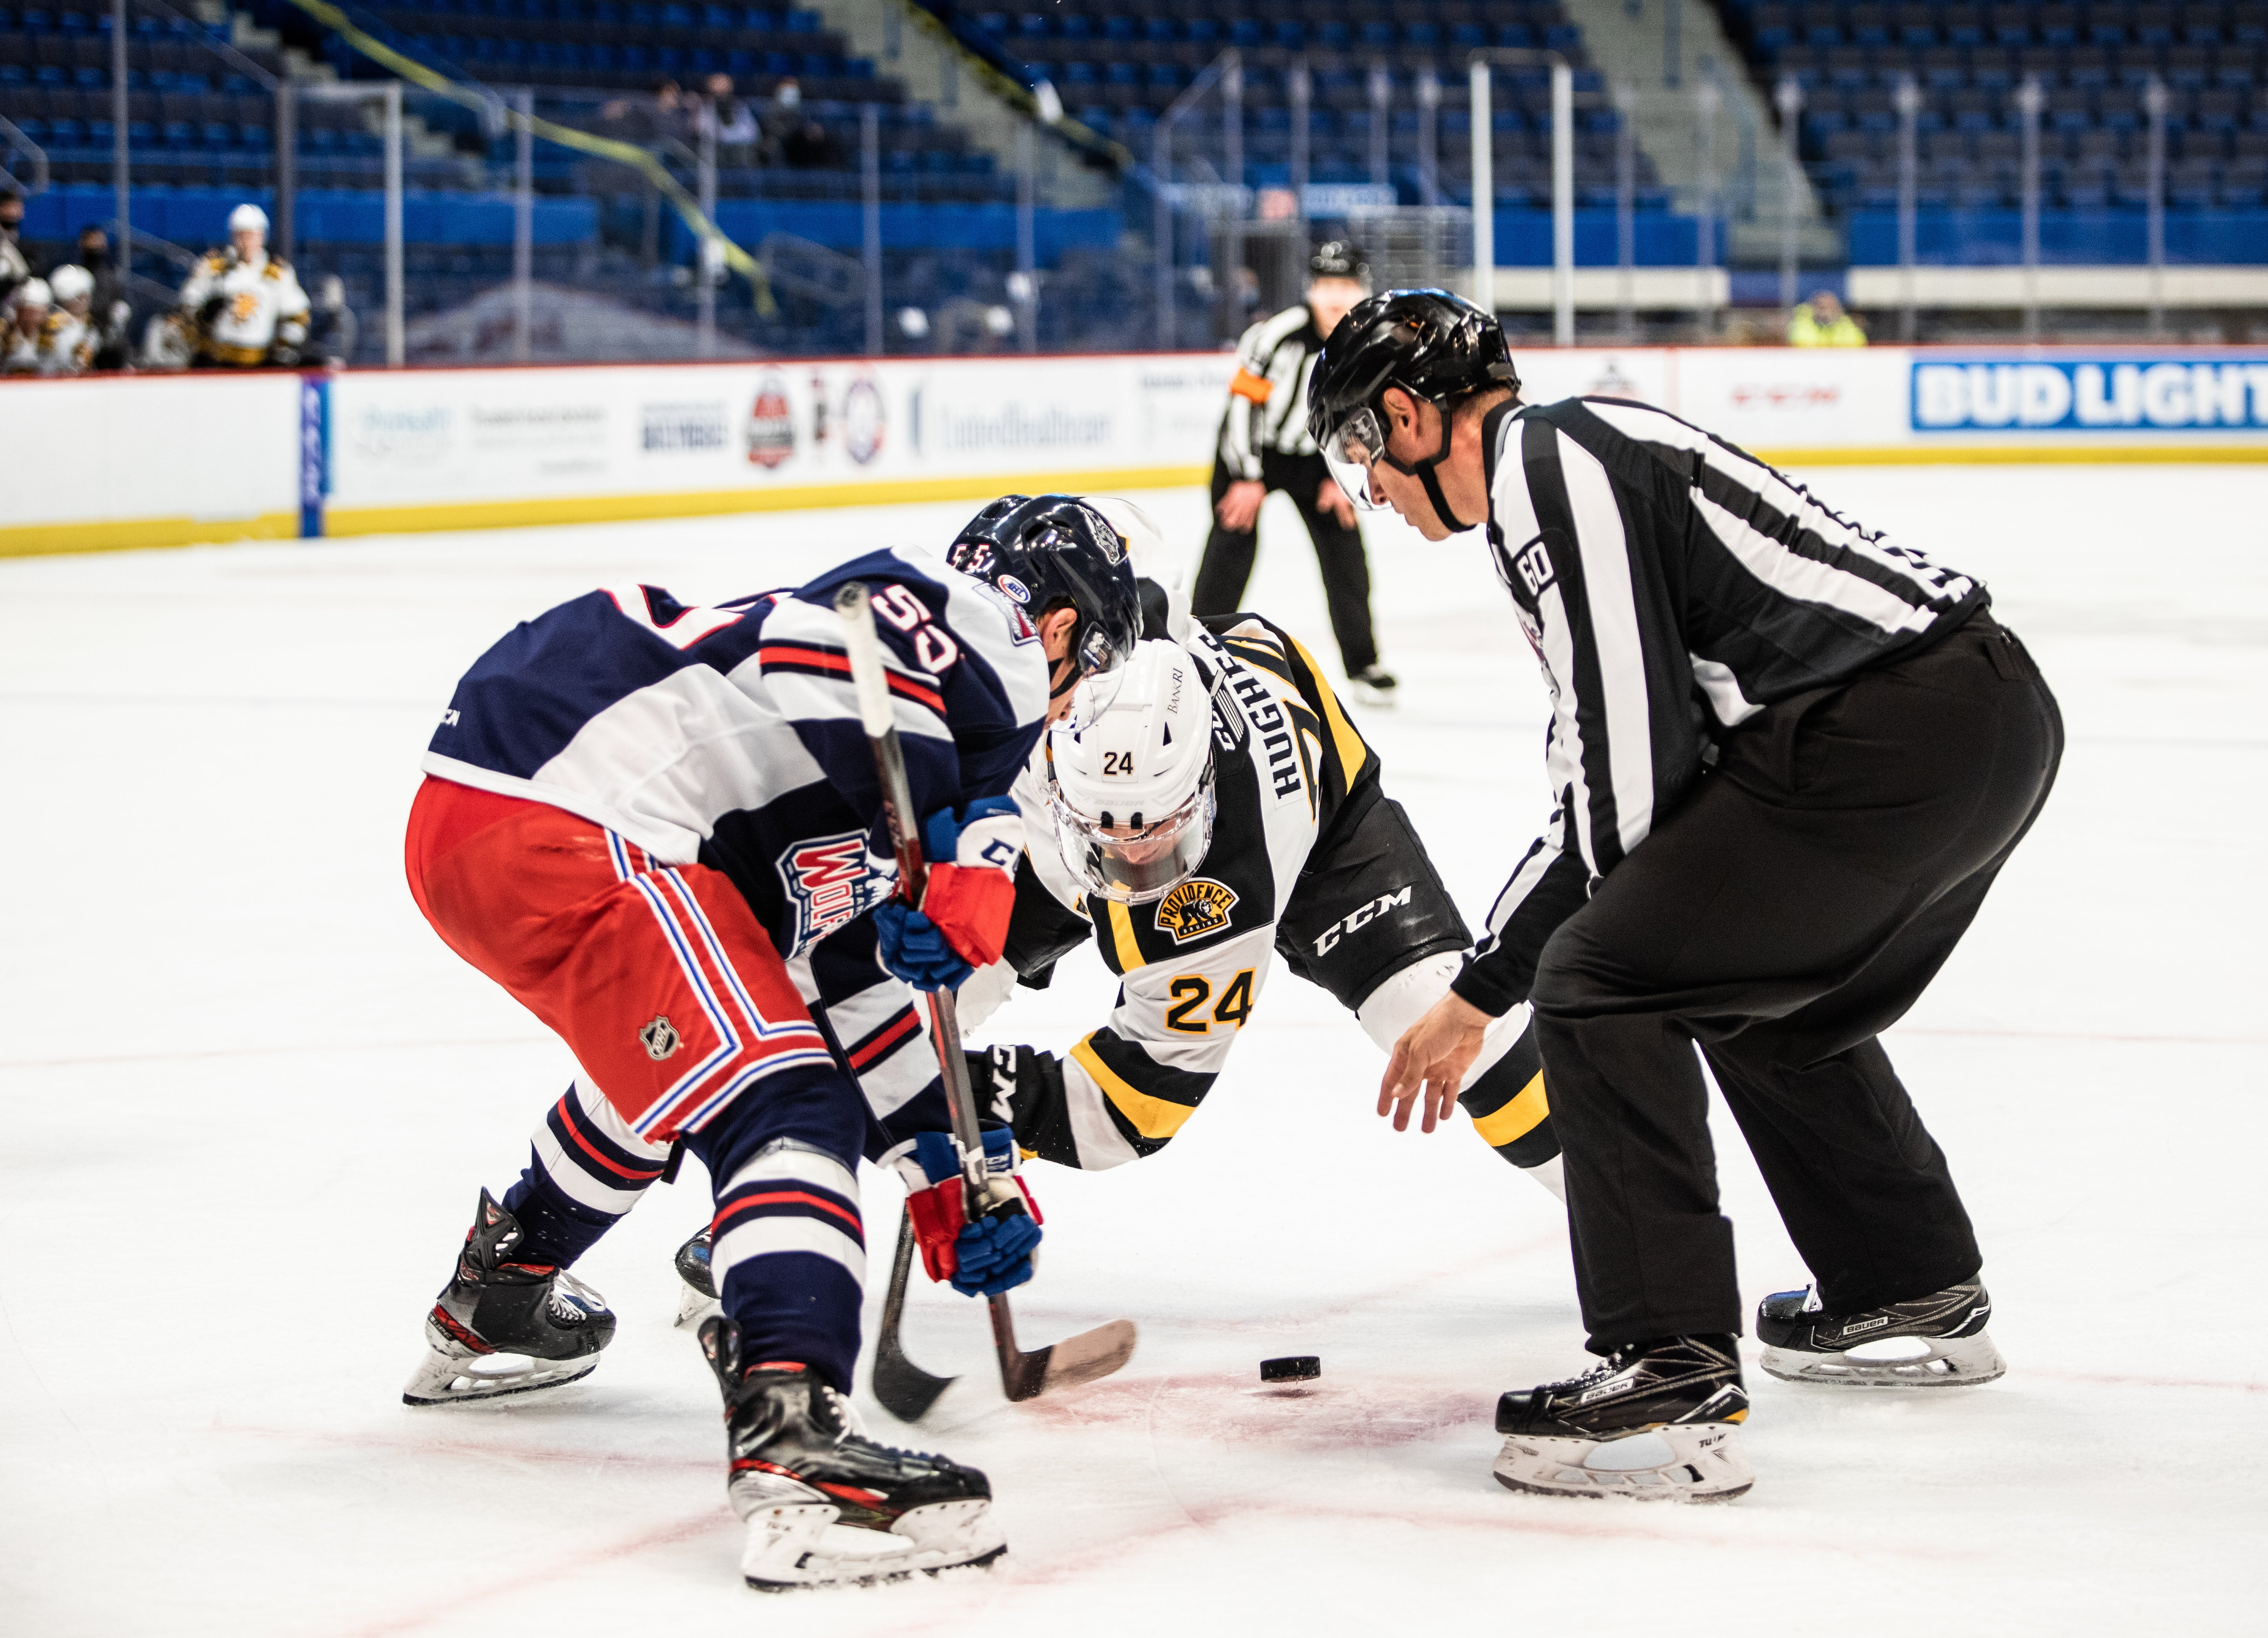 P-BRUINS FALL TO HARTFORD WOLF PACK IN OVERTIME, 3-2